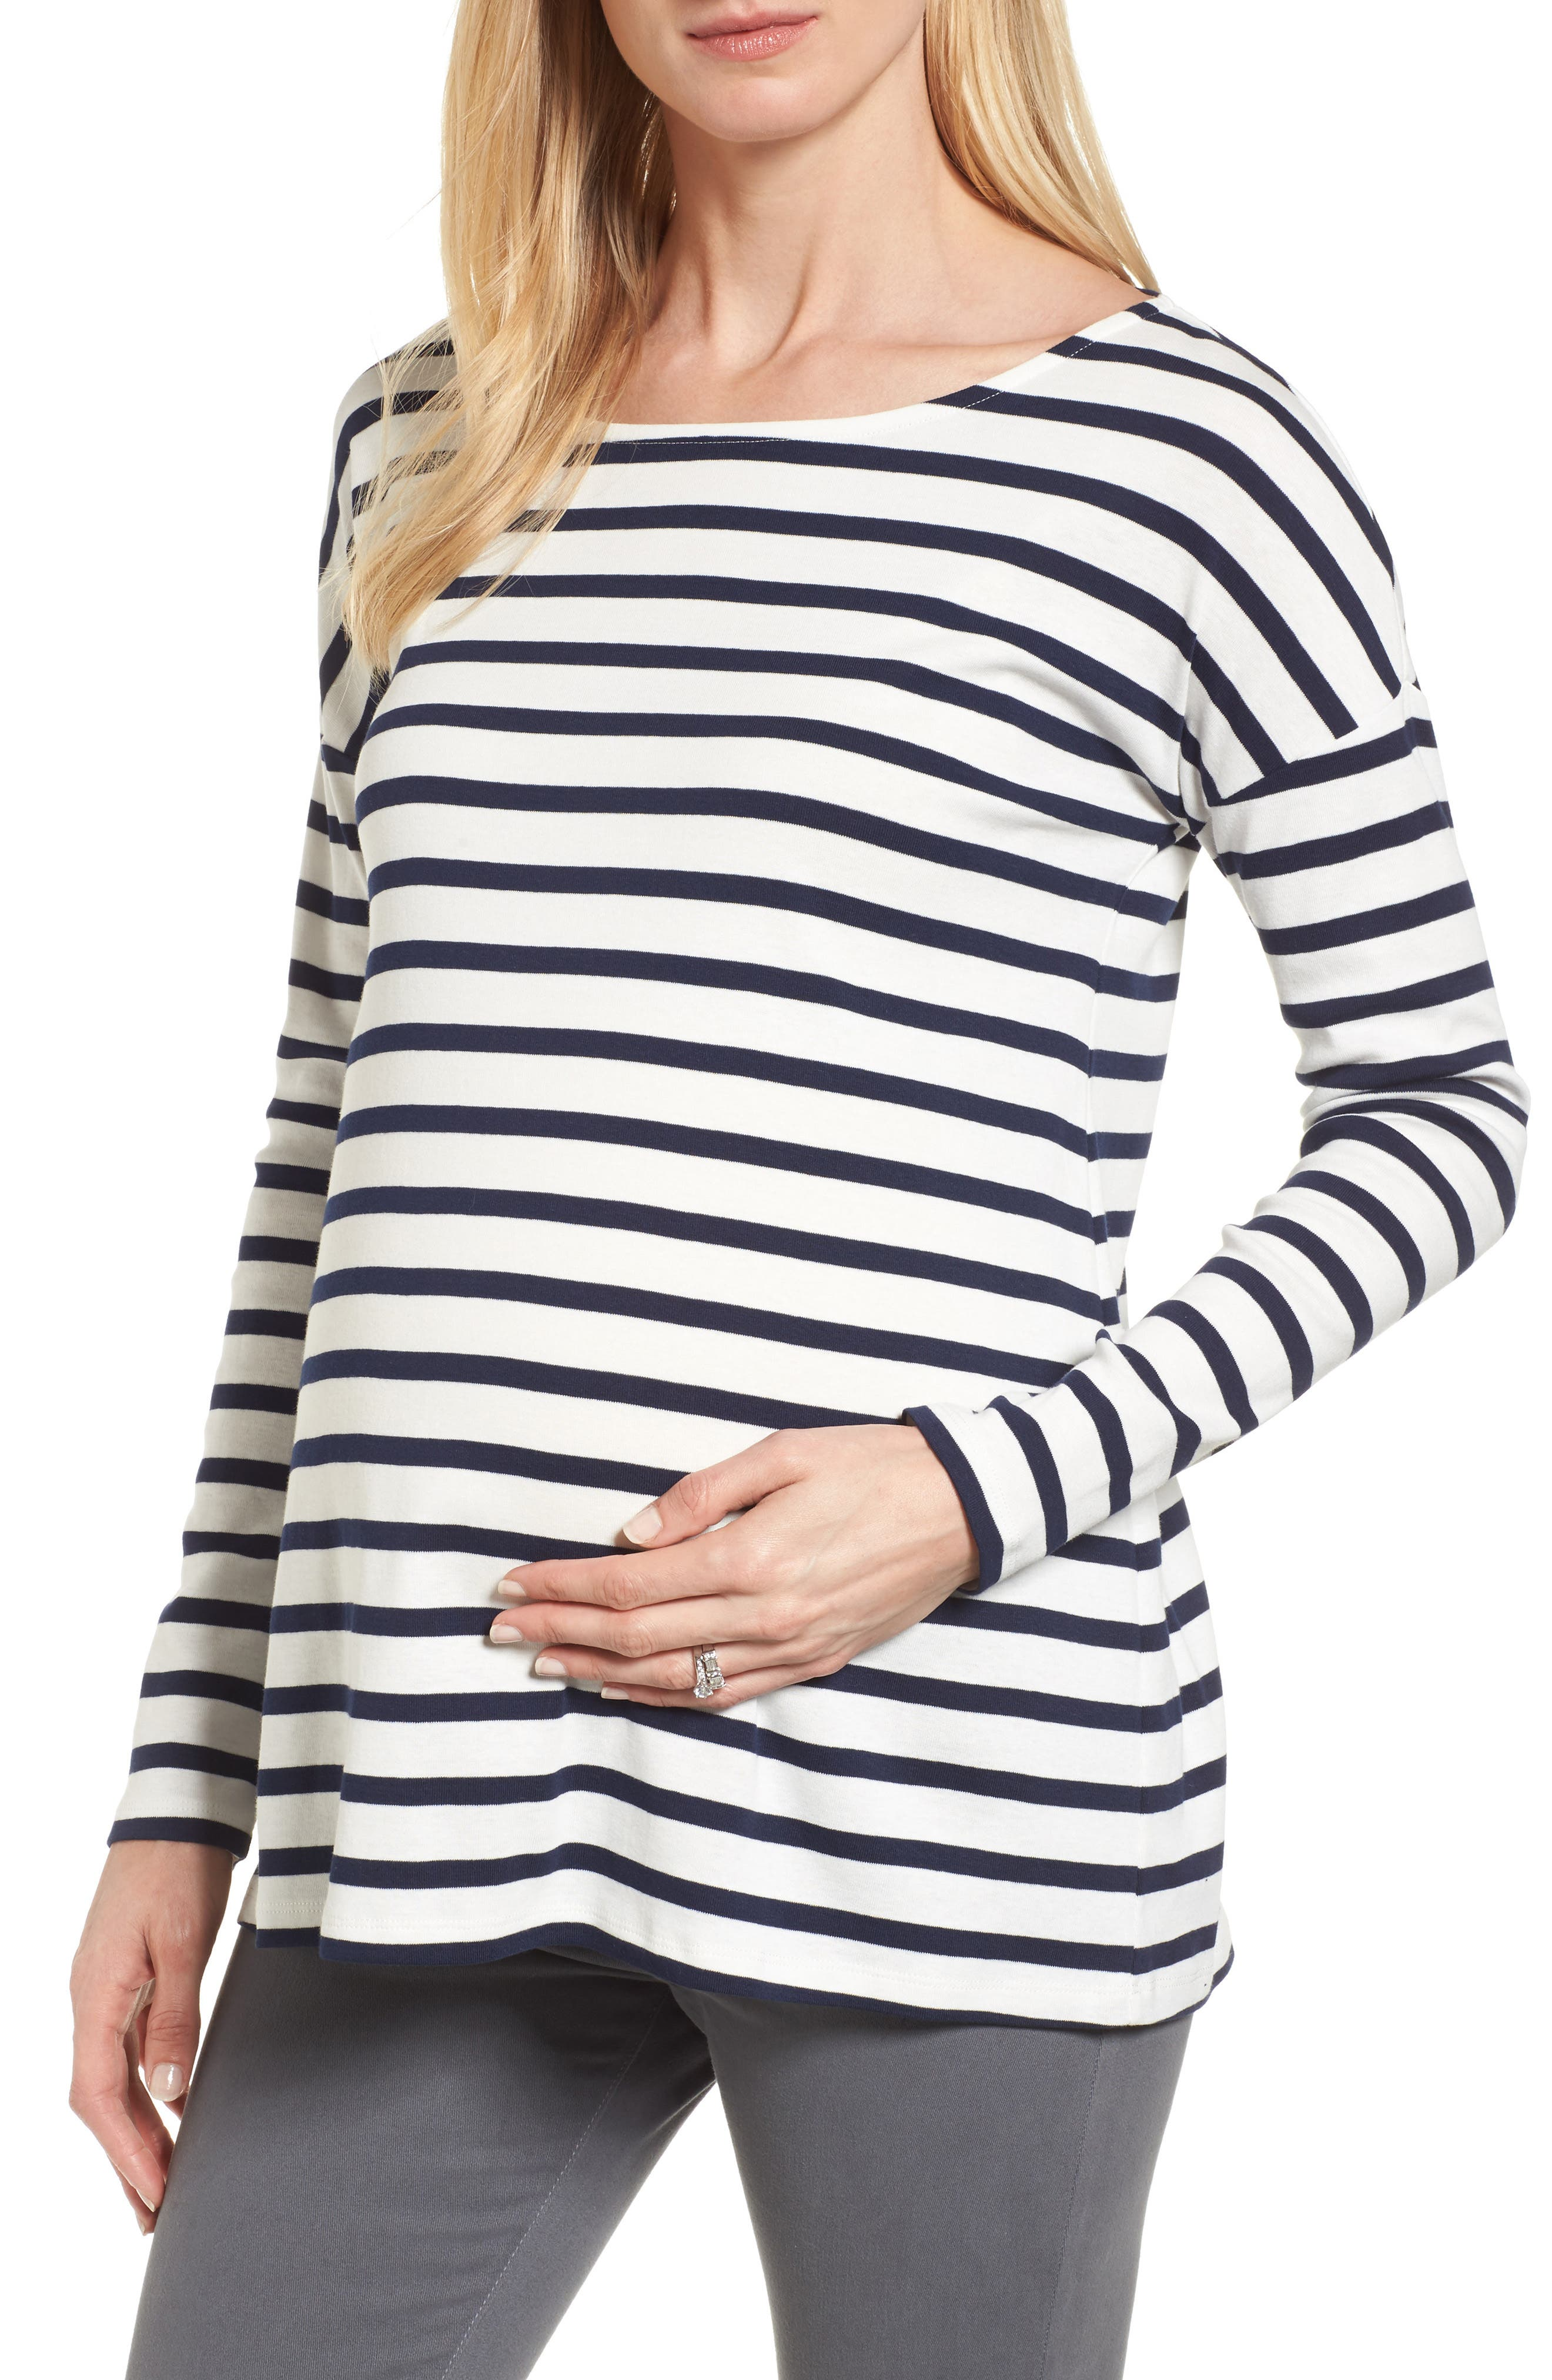 Isabella Oliver Caia Stripe Maternity Top